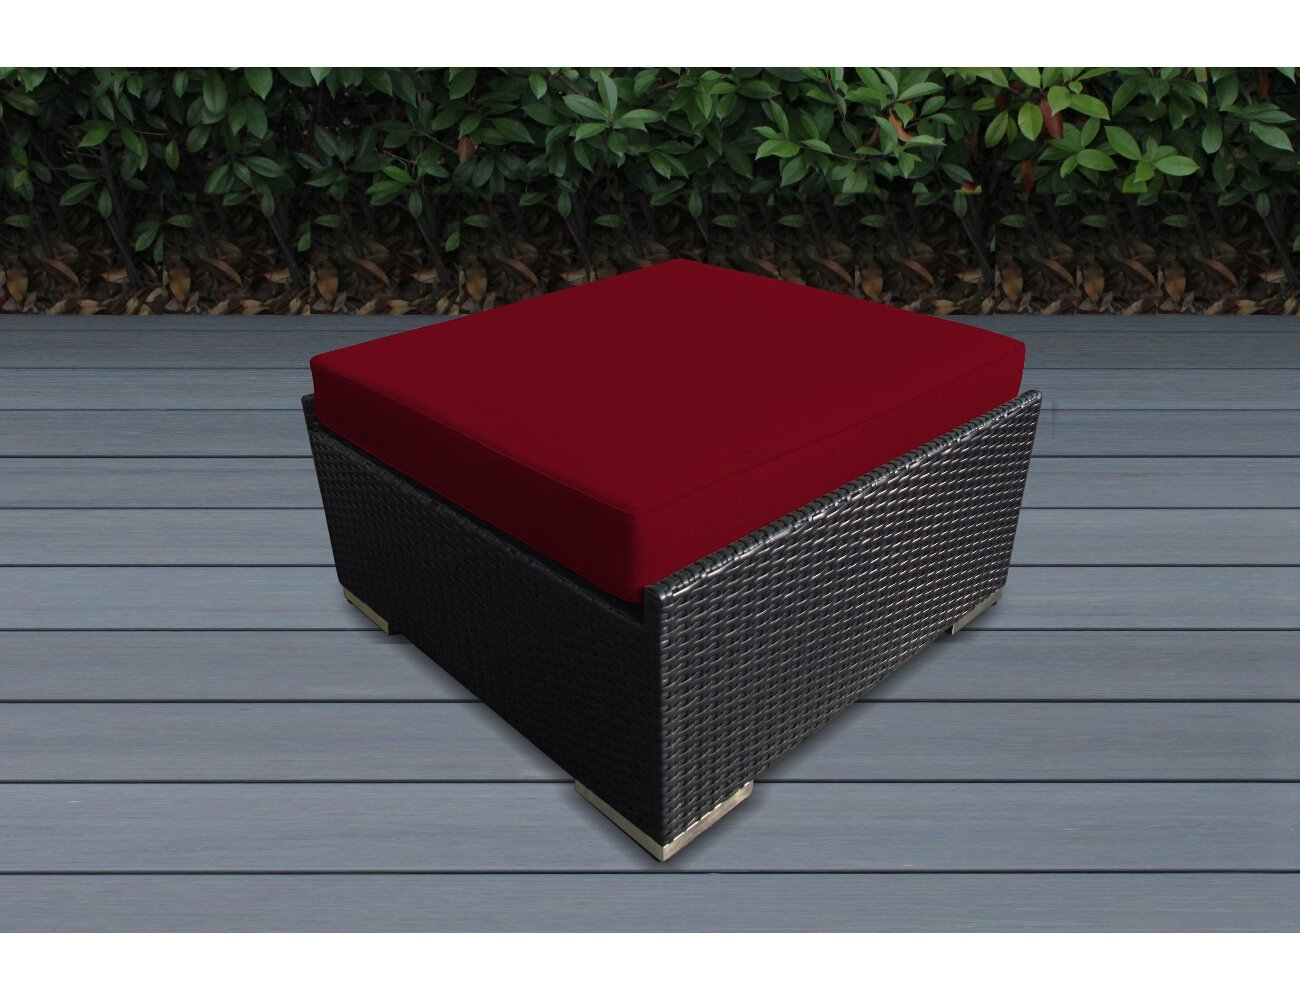 Ohana 7-Piece Patio Wicker Sectional Sofa Set with Cover, Red - All Weather Black PE Resin Wicker Couch Set is modular and can be arranged many ways 7pc Set includes 2 Corner Sofas + 2 Middle Sofas + 2 Large Ottomans +1 Coffee Table. The Sofa set is 28 inches tall to provide full support for your back. Weather resistent cushion covers are durable, resilient against the elements, and zippered for easy cleaning - patio-furniture, patio, conversation-sets - 717EGqBAJ5L -